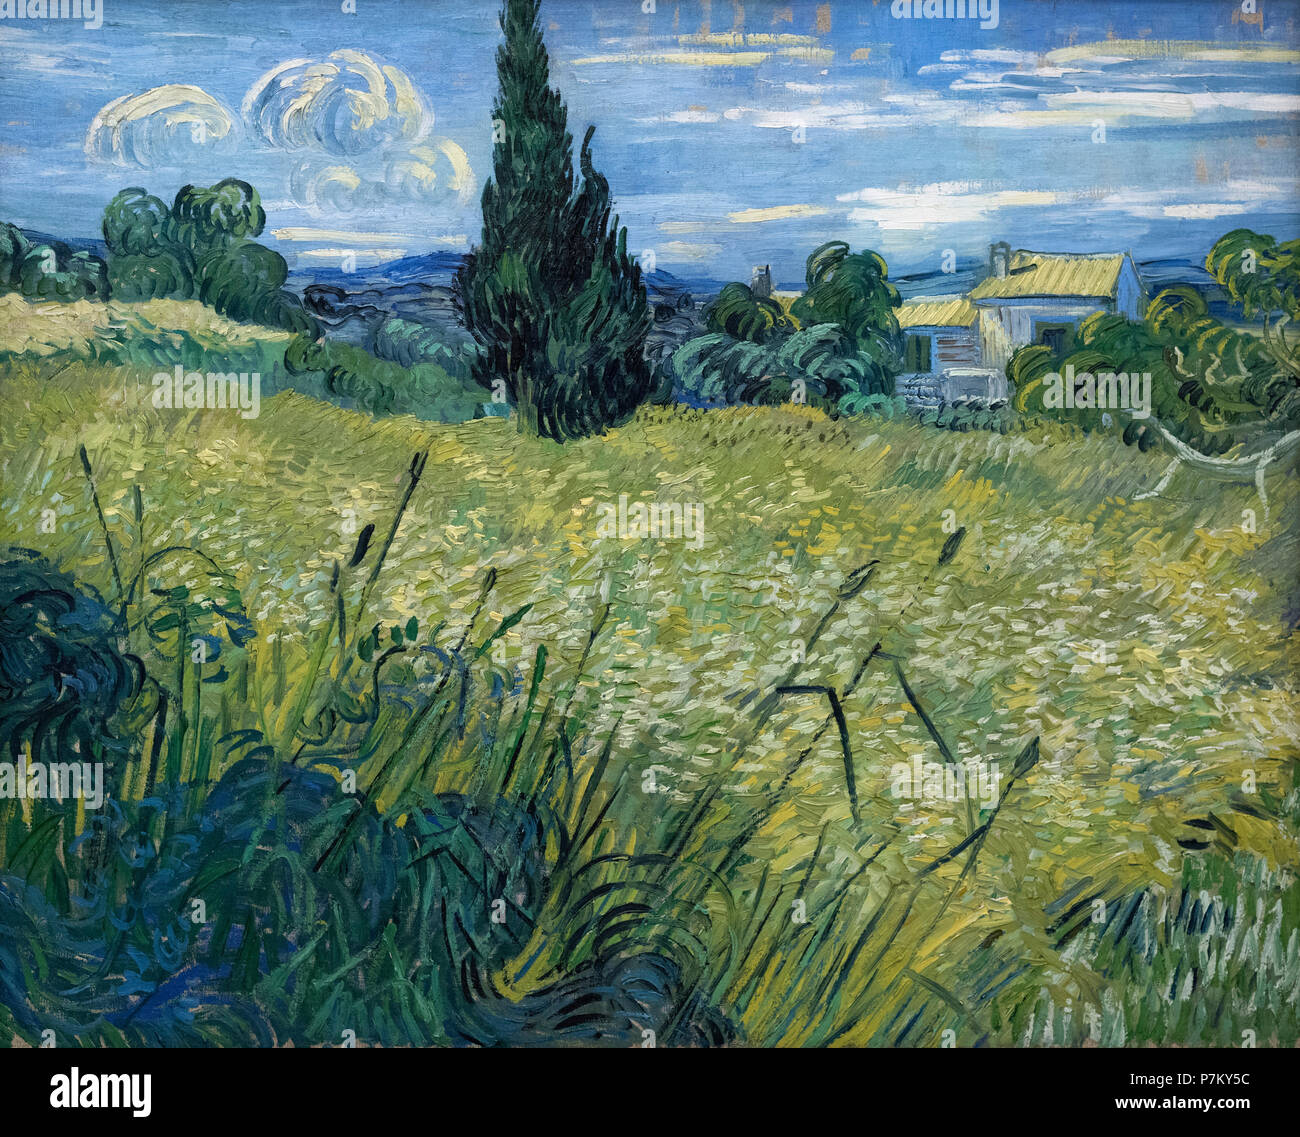 Vincent van Gogh (1853-1890), Green Corn (Green Wheat Field with Cypress), 1889. National Gallery in Prague (Národní galerie v Praze).   Oil on canvas - Stock Image